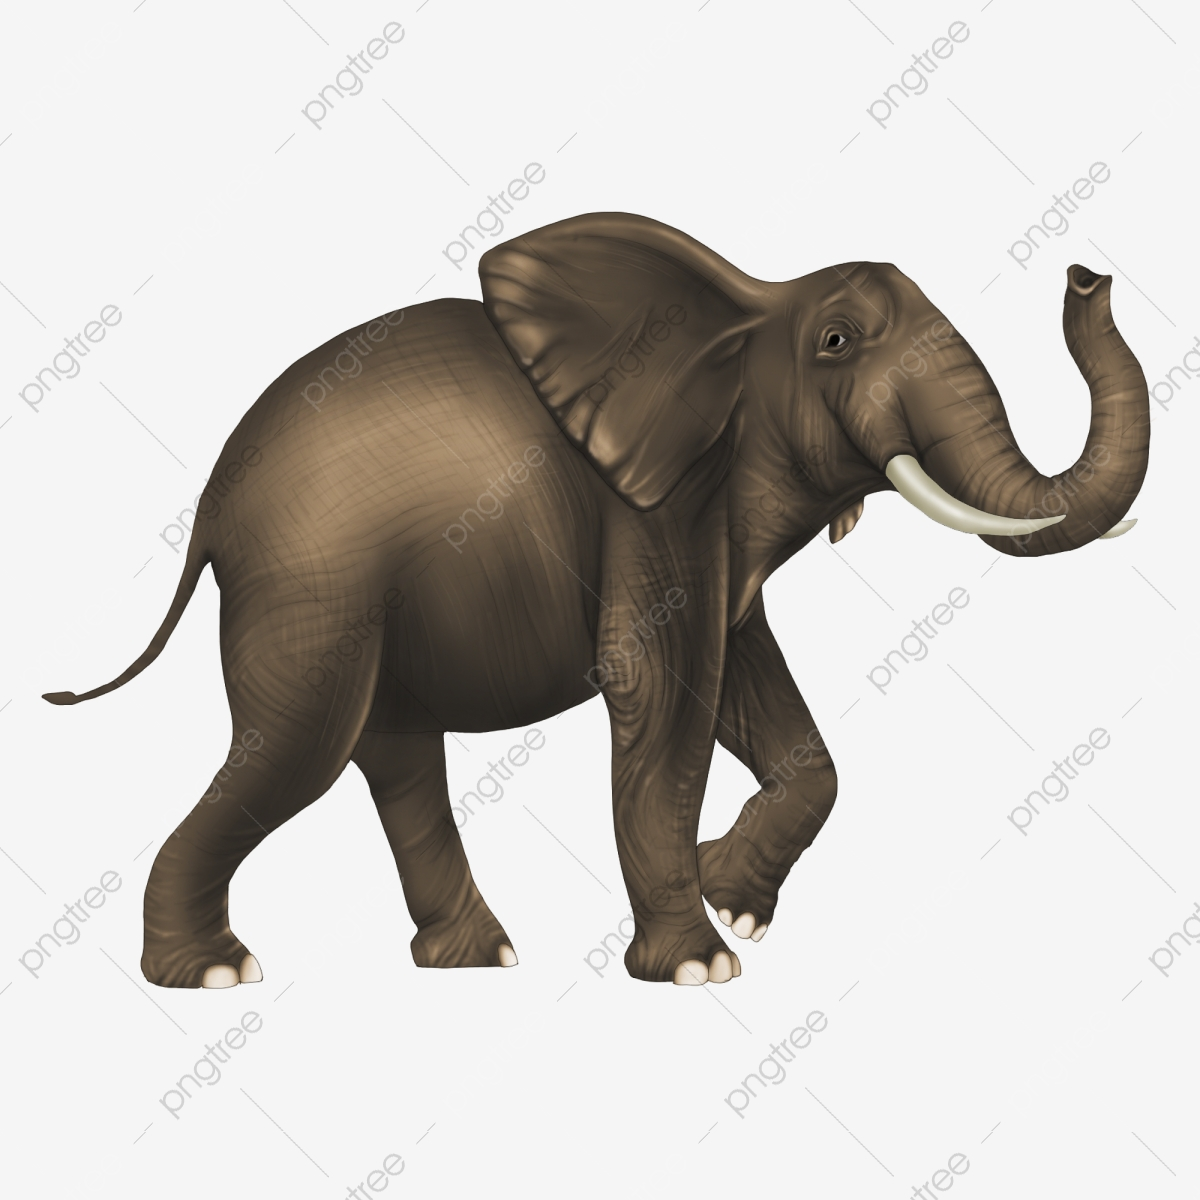 Elephant Png Background – When designing a new logo you can be inspired by the visual logos found here.